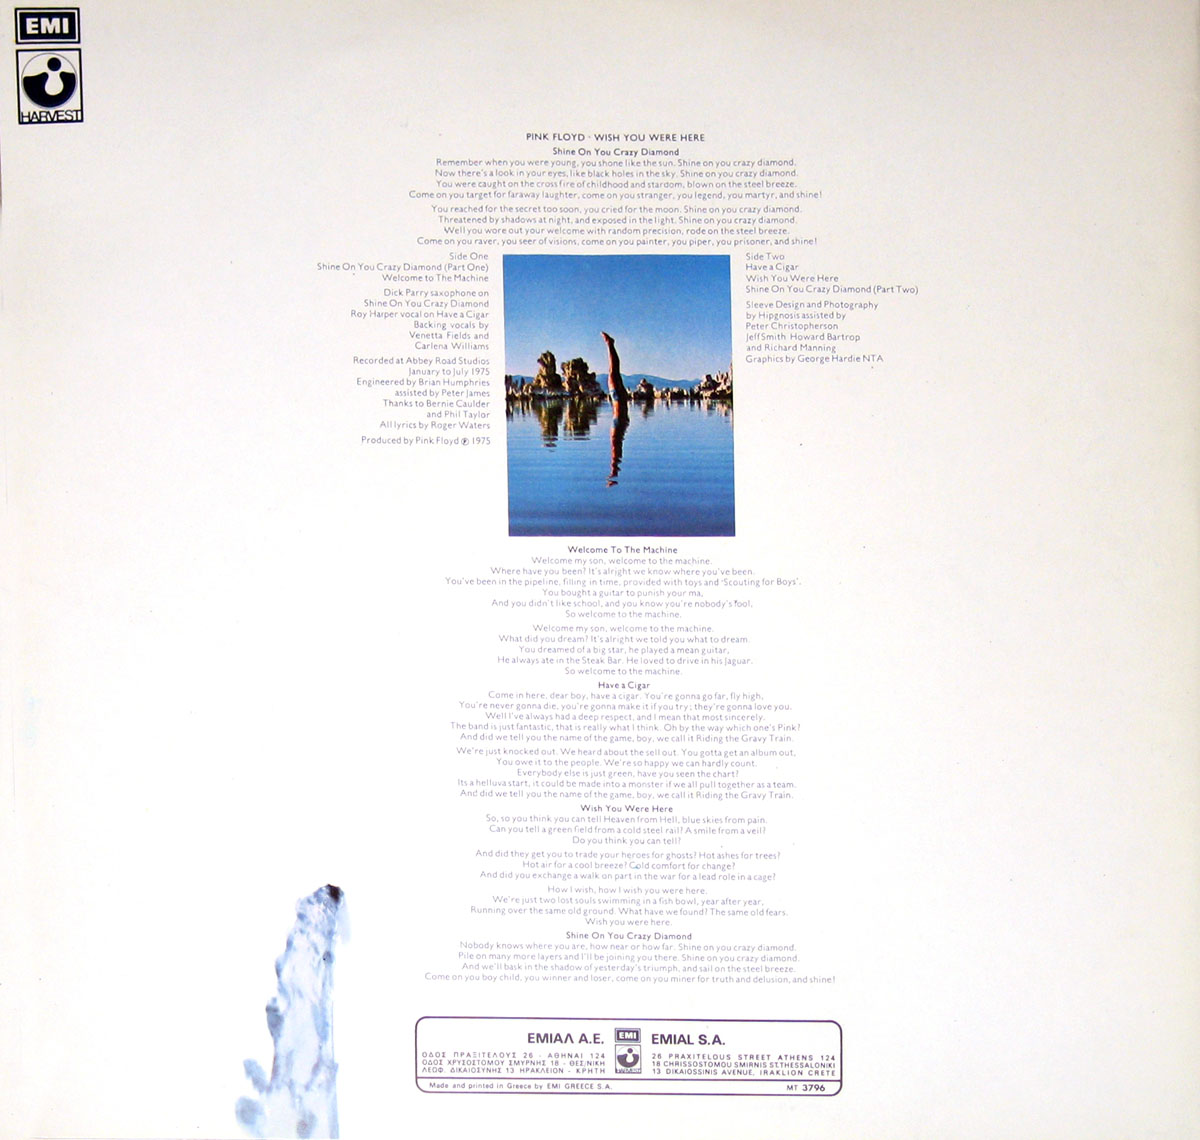 High Resolution Photo #4 PINK FLOYD Wish You Were Greece